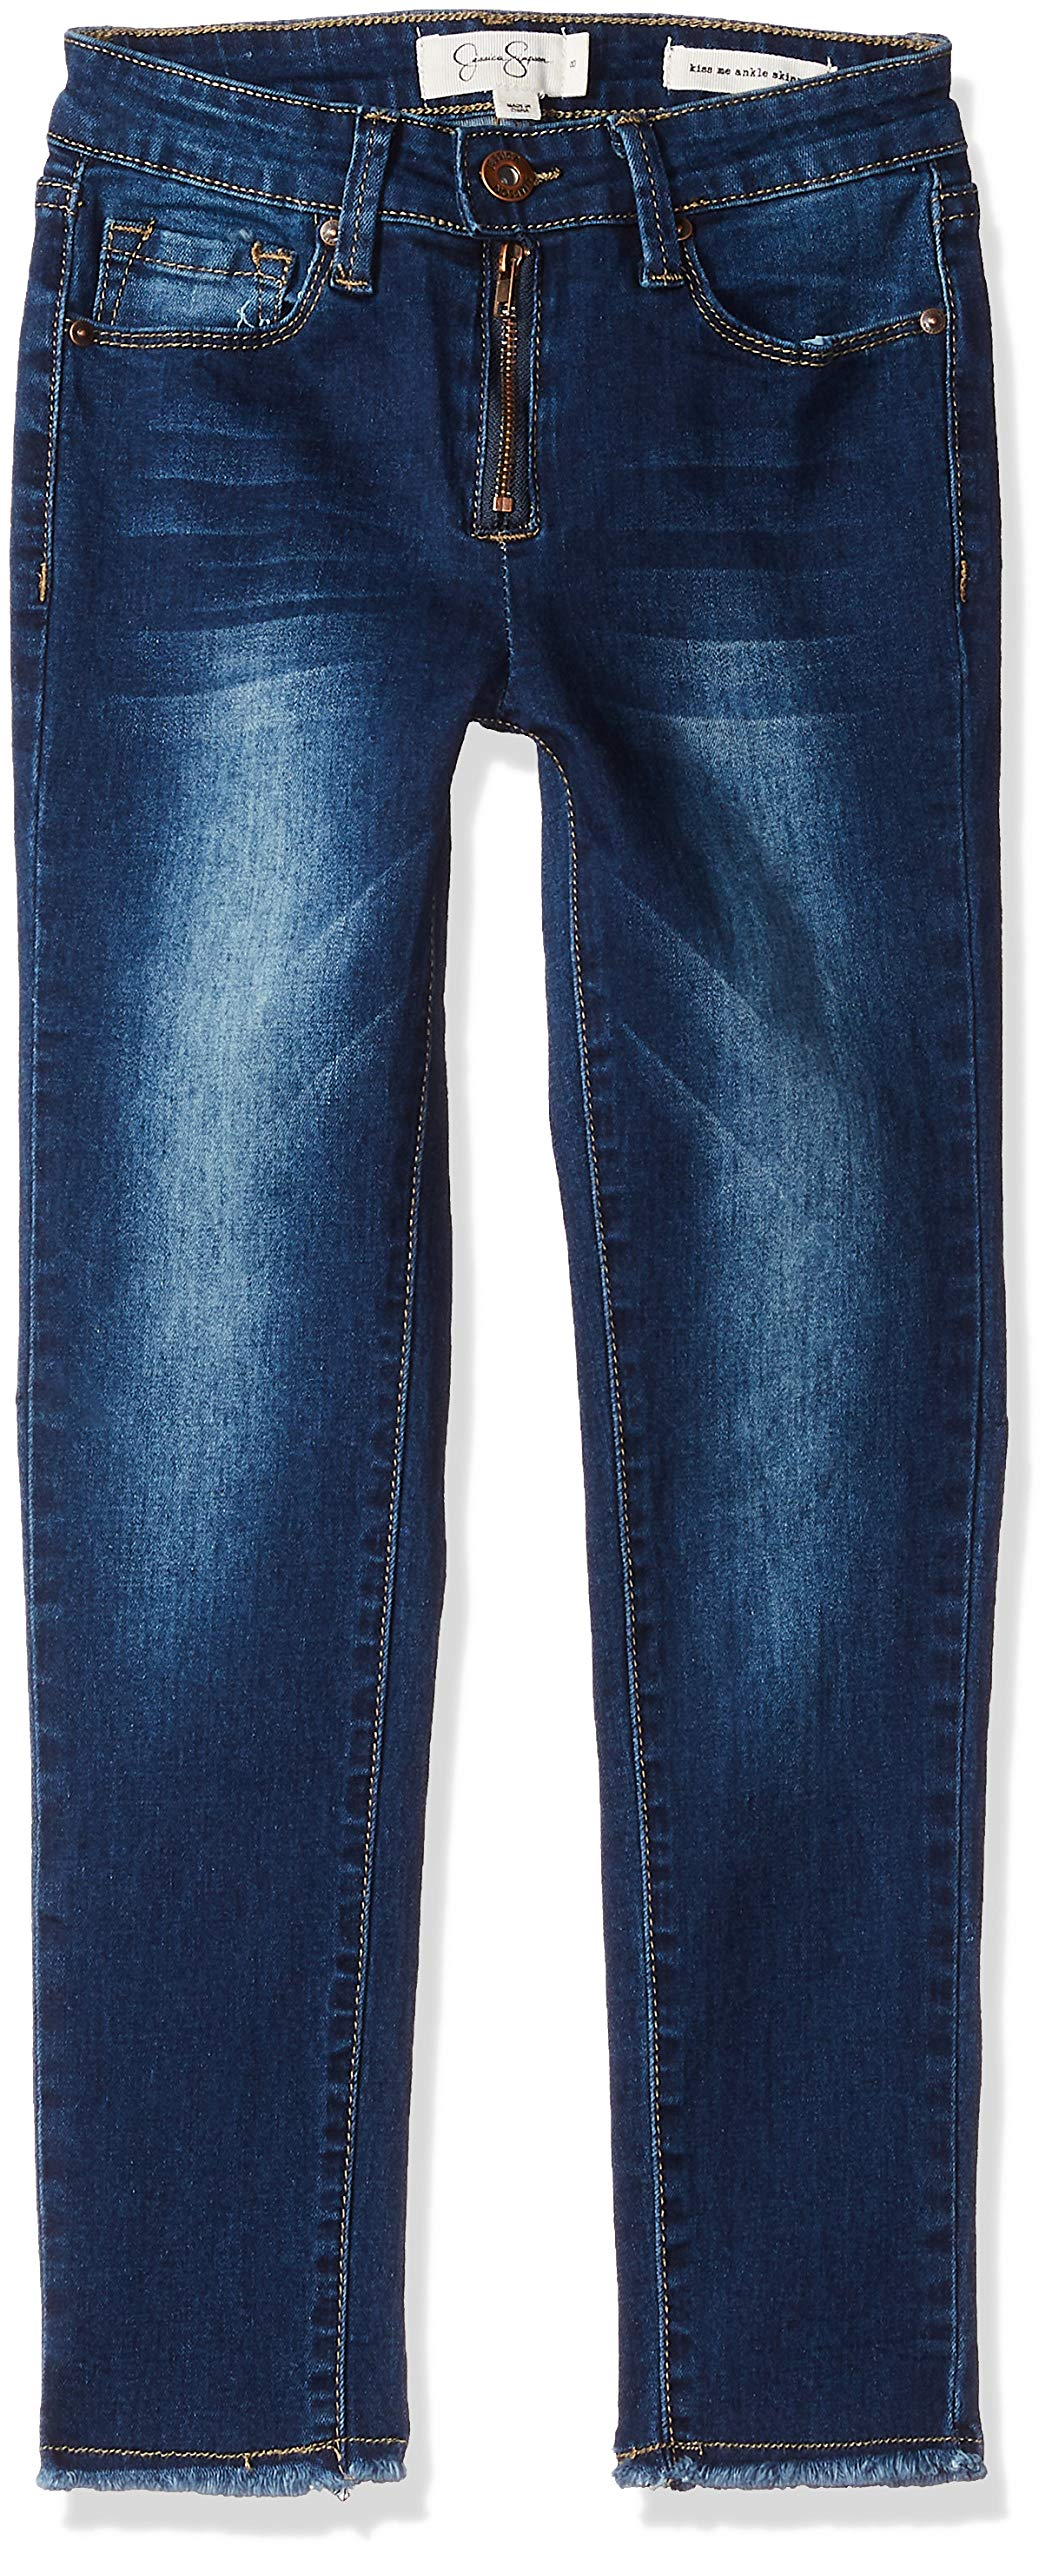 Jessica Simpson Big Girls' Skinny Jean Embroidery, Blue Wash, 14